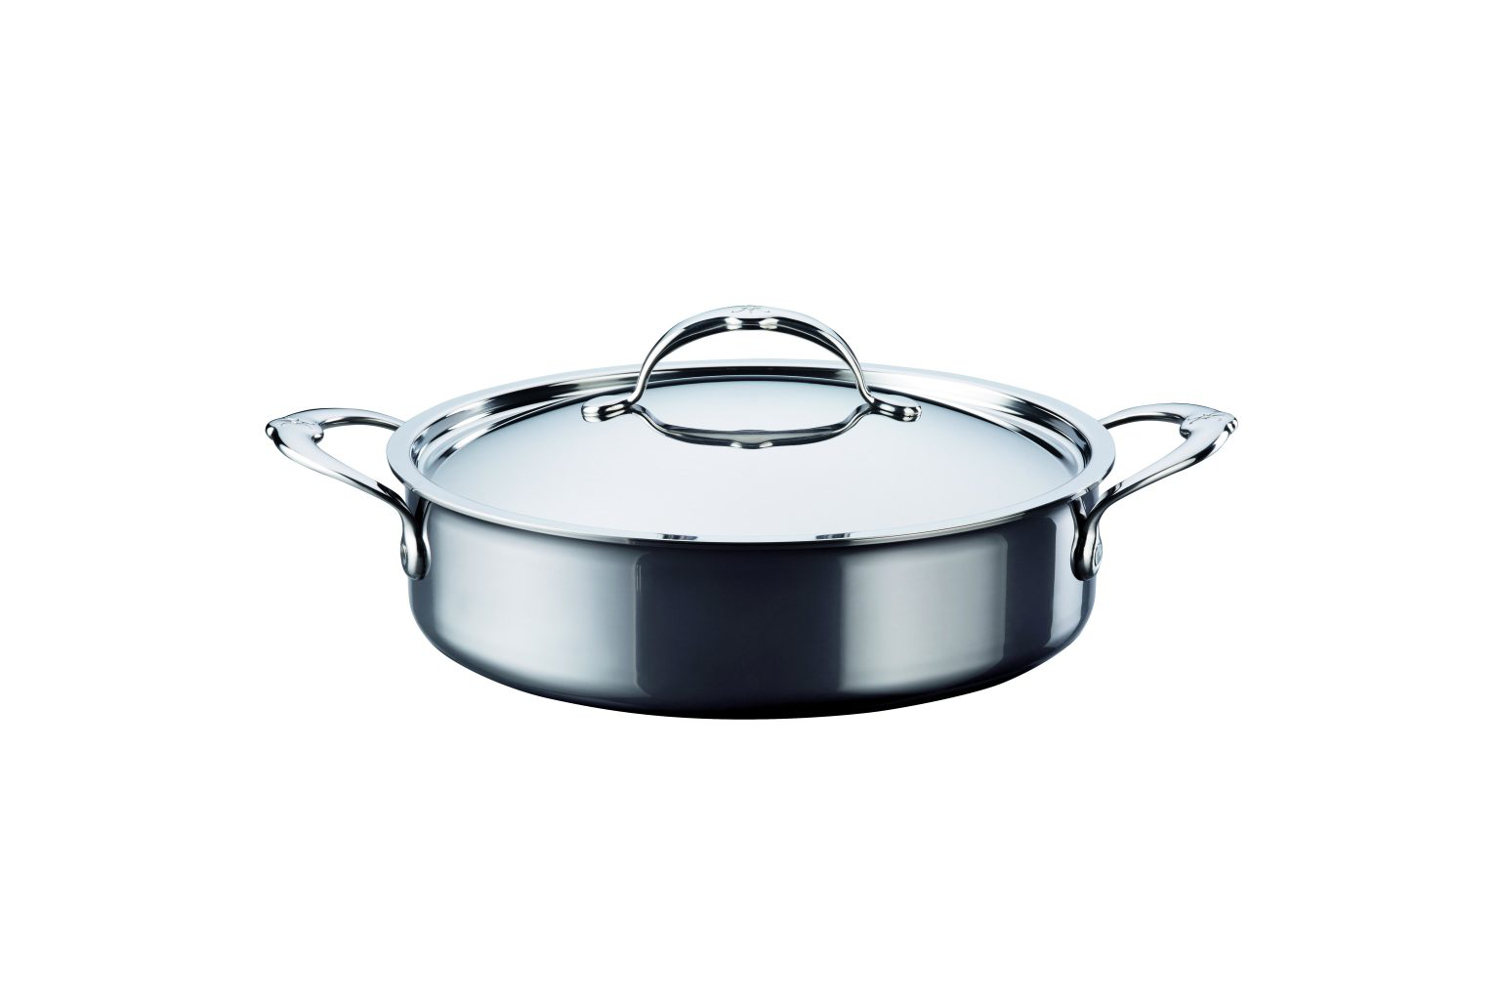 Hestan NanoBond Stainless Steel 3 1/2 qt. Covered Sauteuse